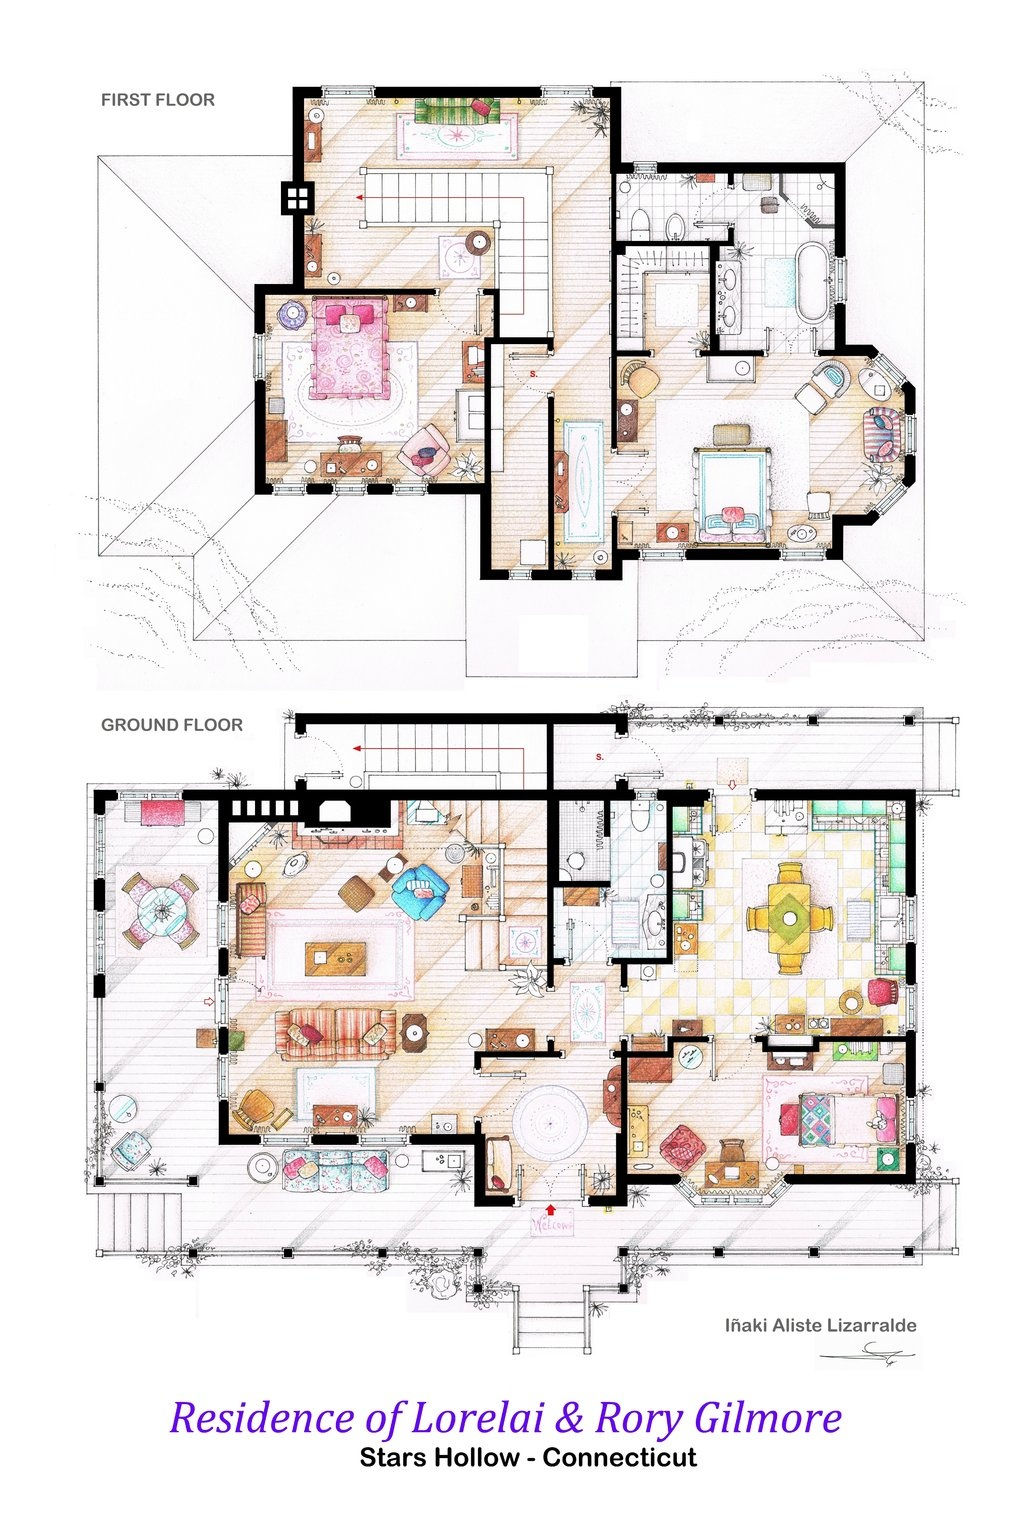 Floor plans of homes from famous TV shows on townhouse elevations, townhouse blueprints, townhouse home plans with basement, townhouse community, townhouse plans for narrow lots, 2 car garage duplex plans, townhouse layout, townhouse renderings, townhouse drawings, townhouse rentals, townhouse construction, townhouse deck plans, townhouse luxury interior, garage apartment plans, townhouse design, townhouse master plan,